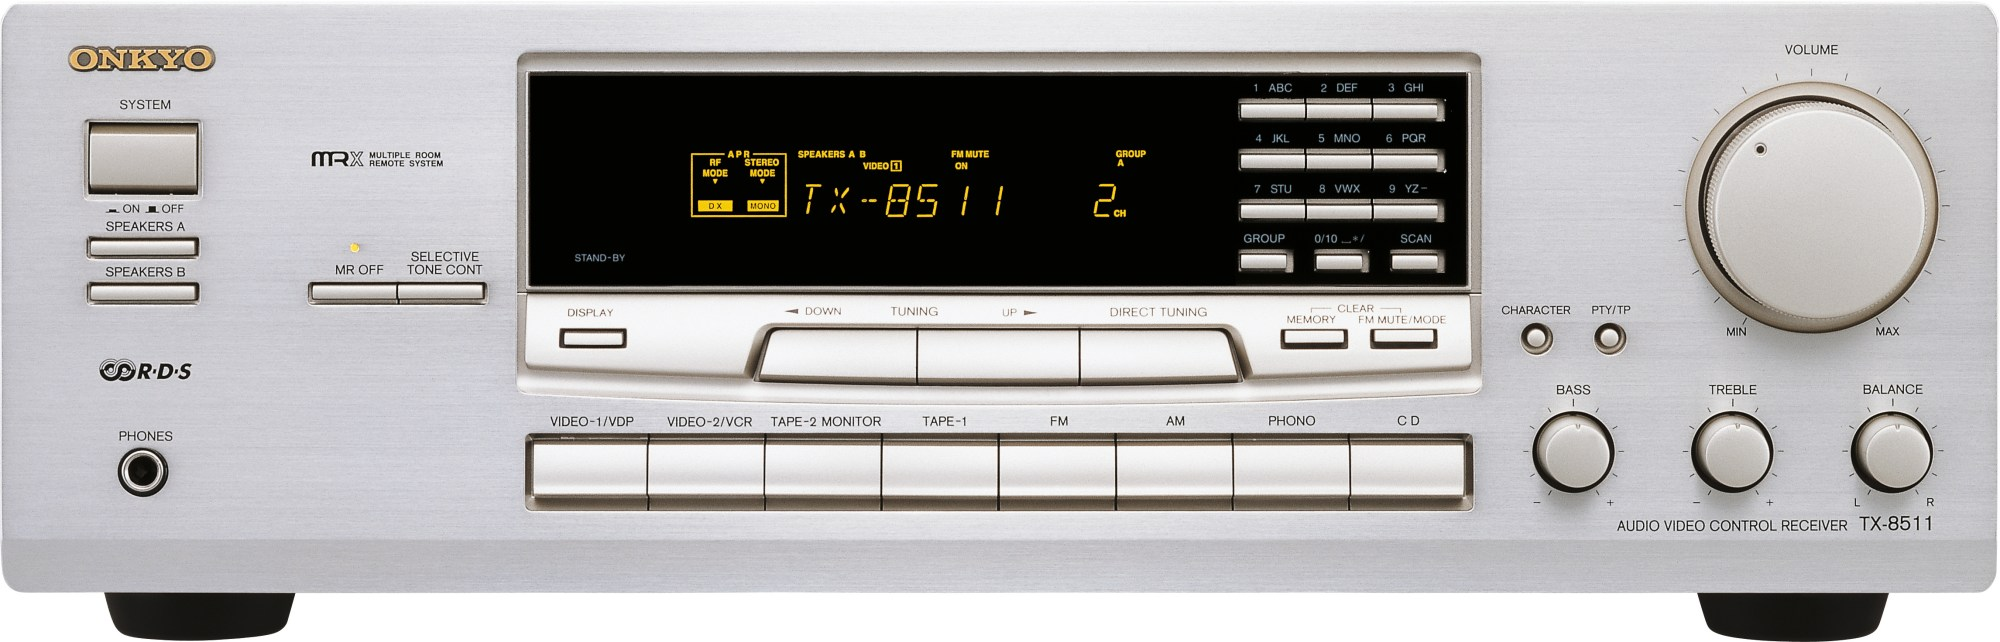 hight resolution of  array onkyo tx 8511 manual rh esori14 f1disk kustanai